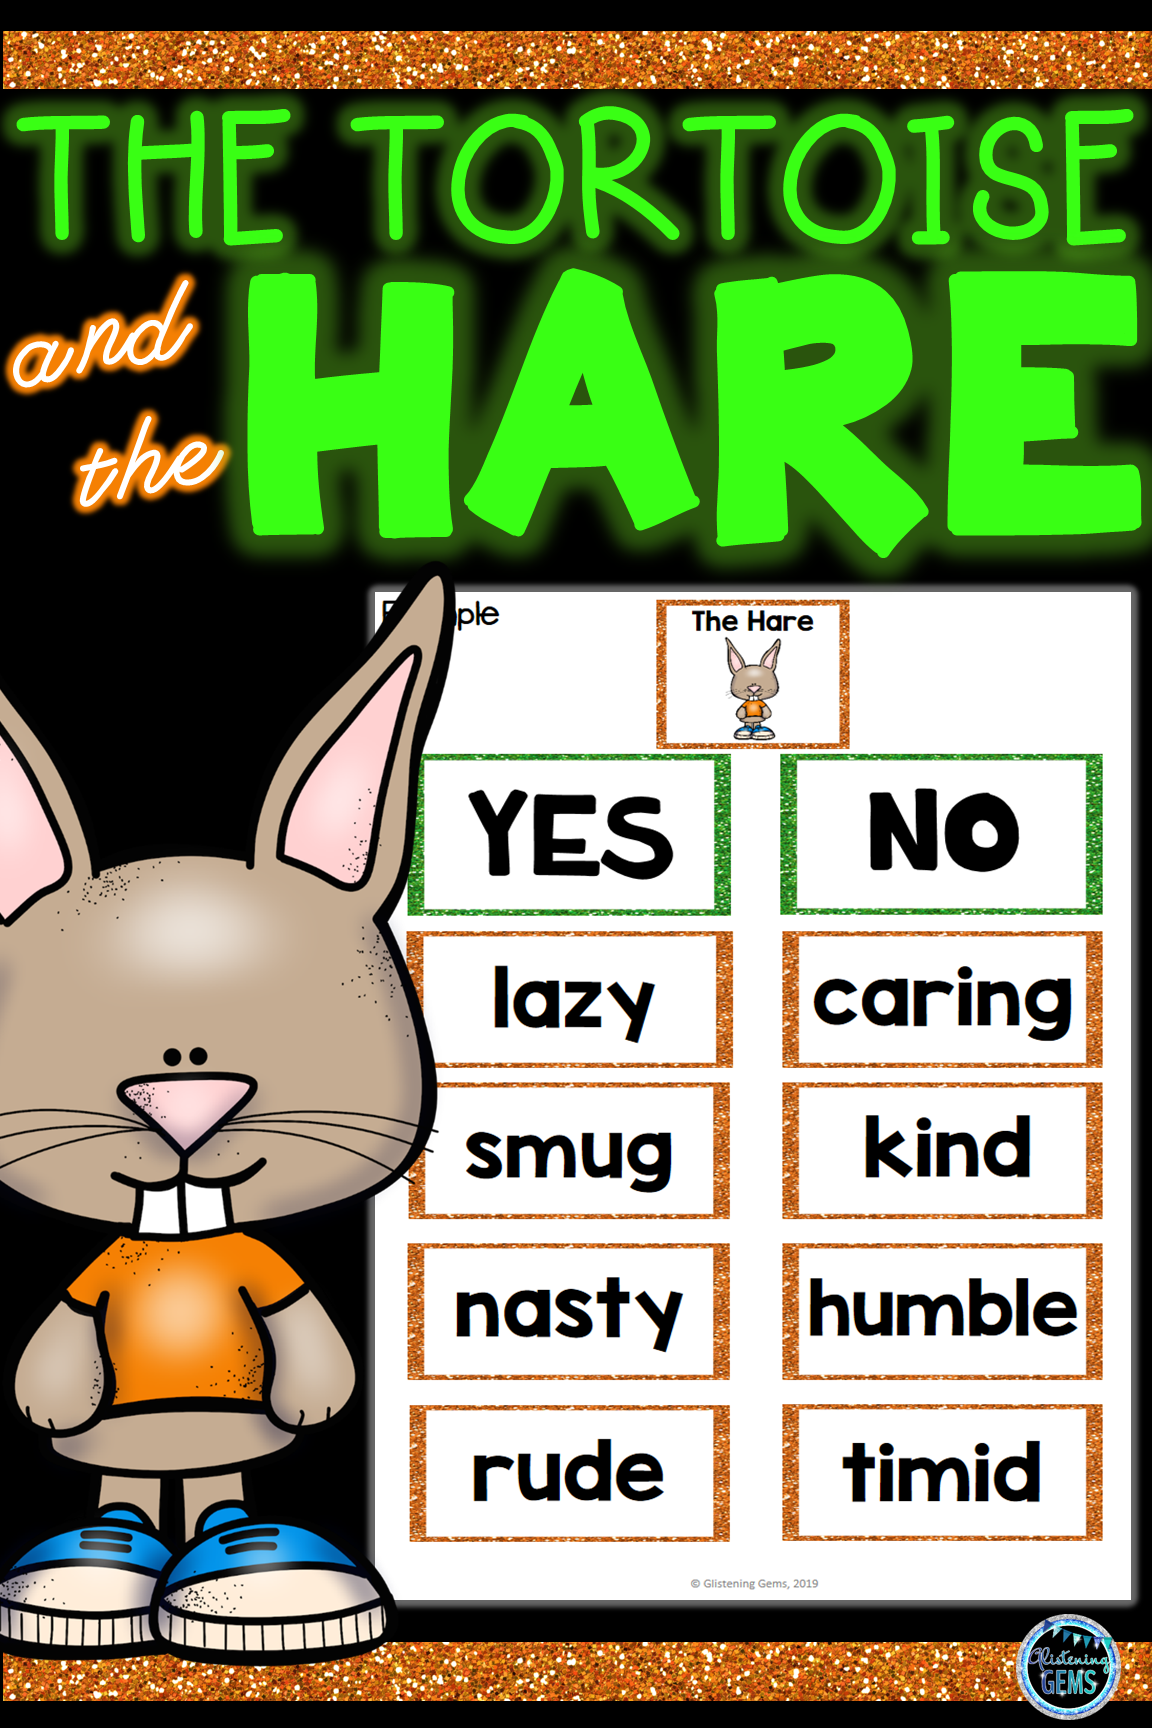 The Tortoise And The Hare Character Traits Game